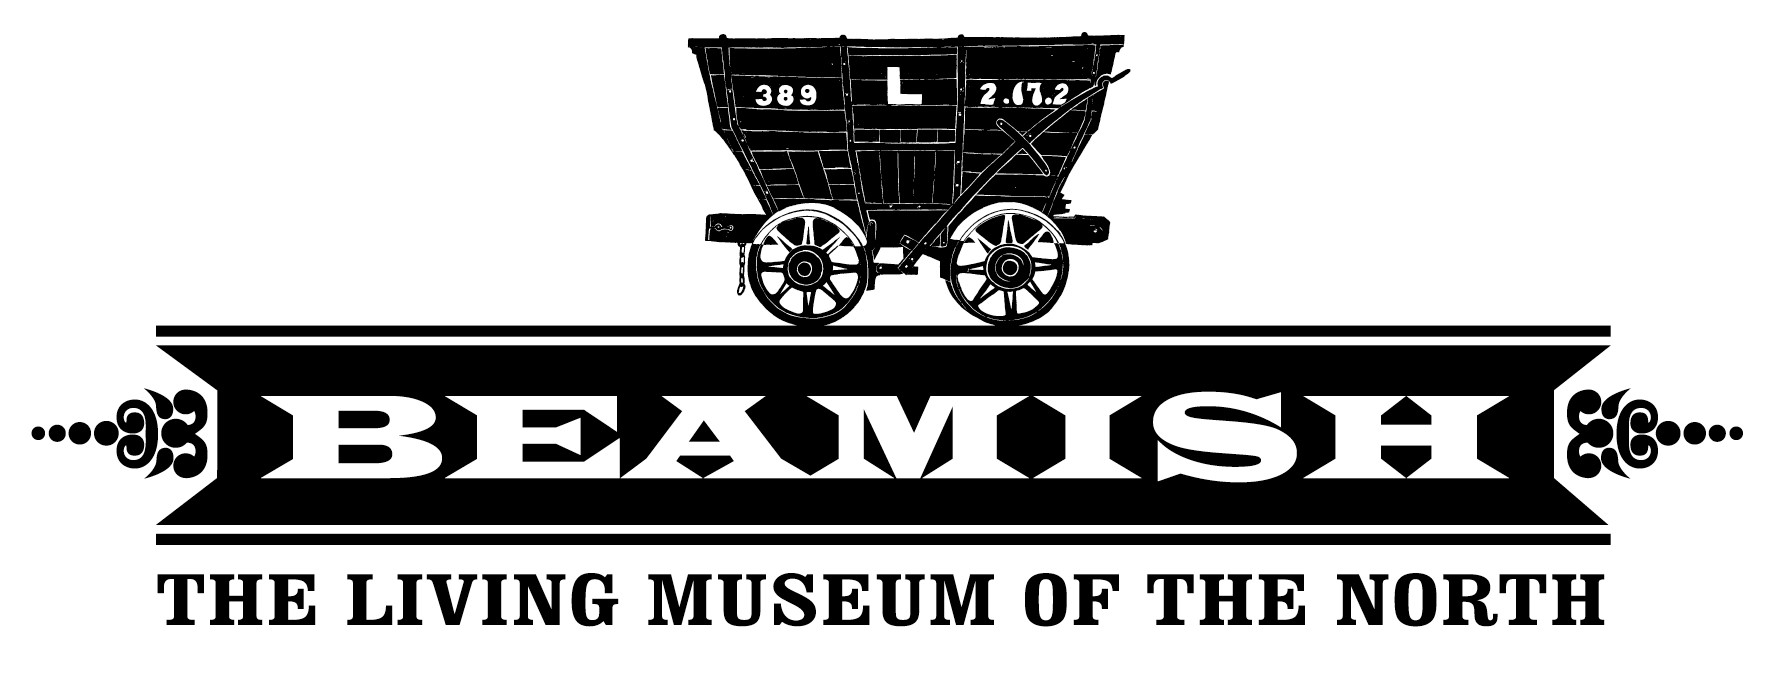 beamish the living museum of the north logo